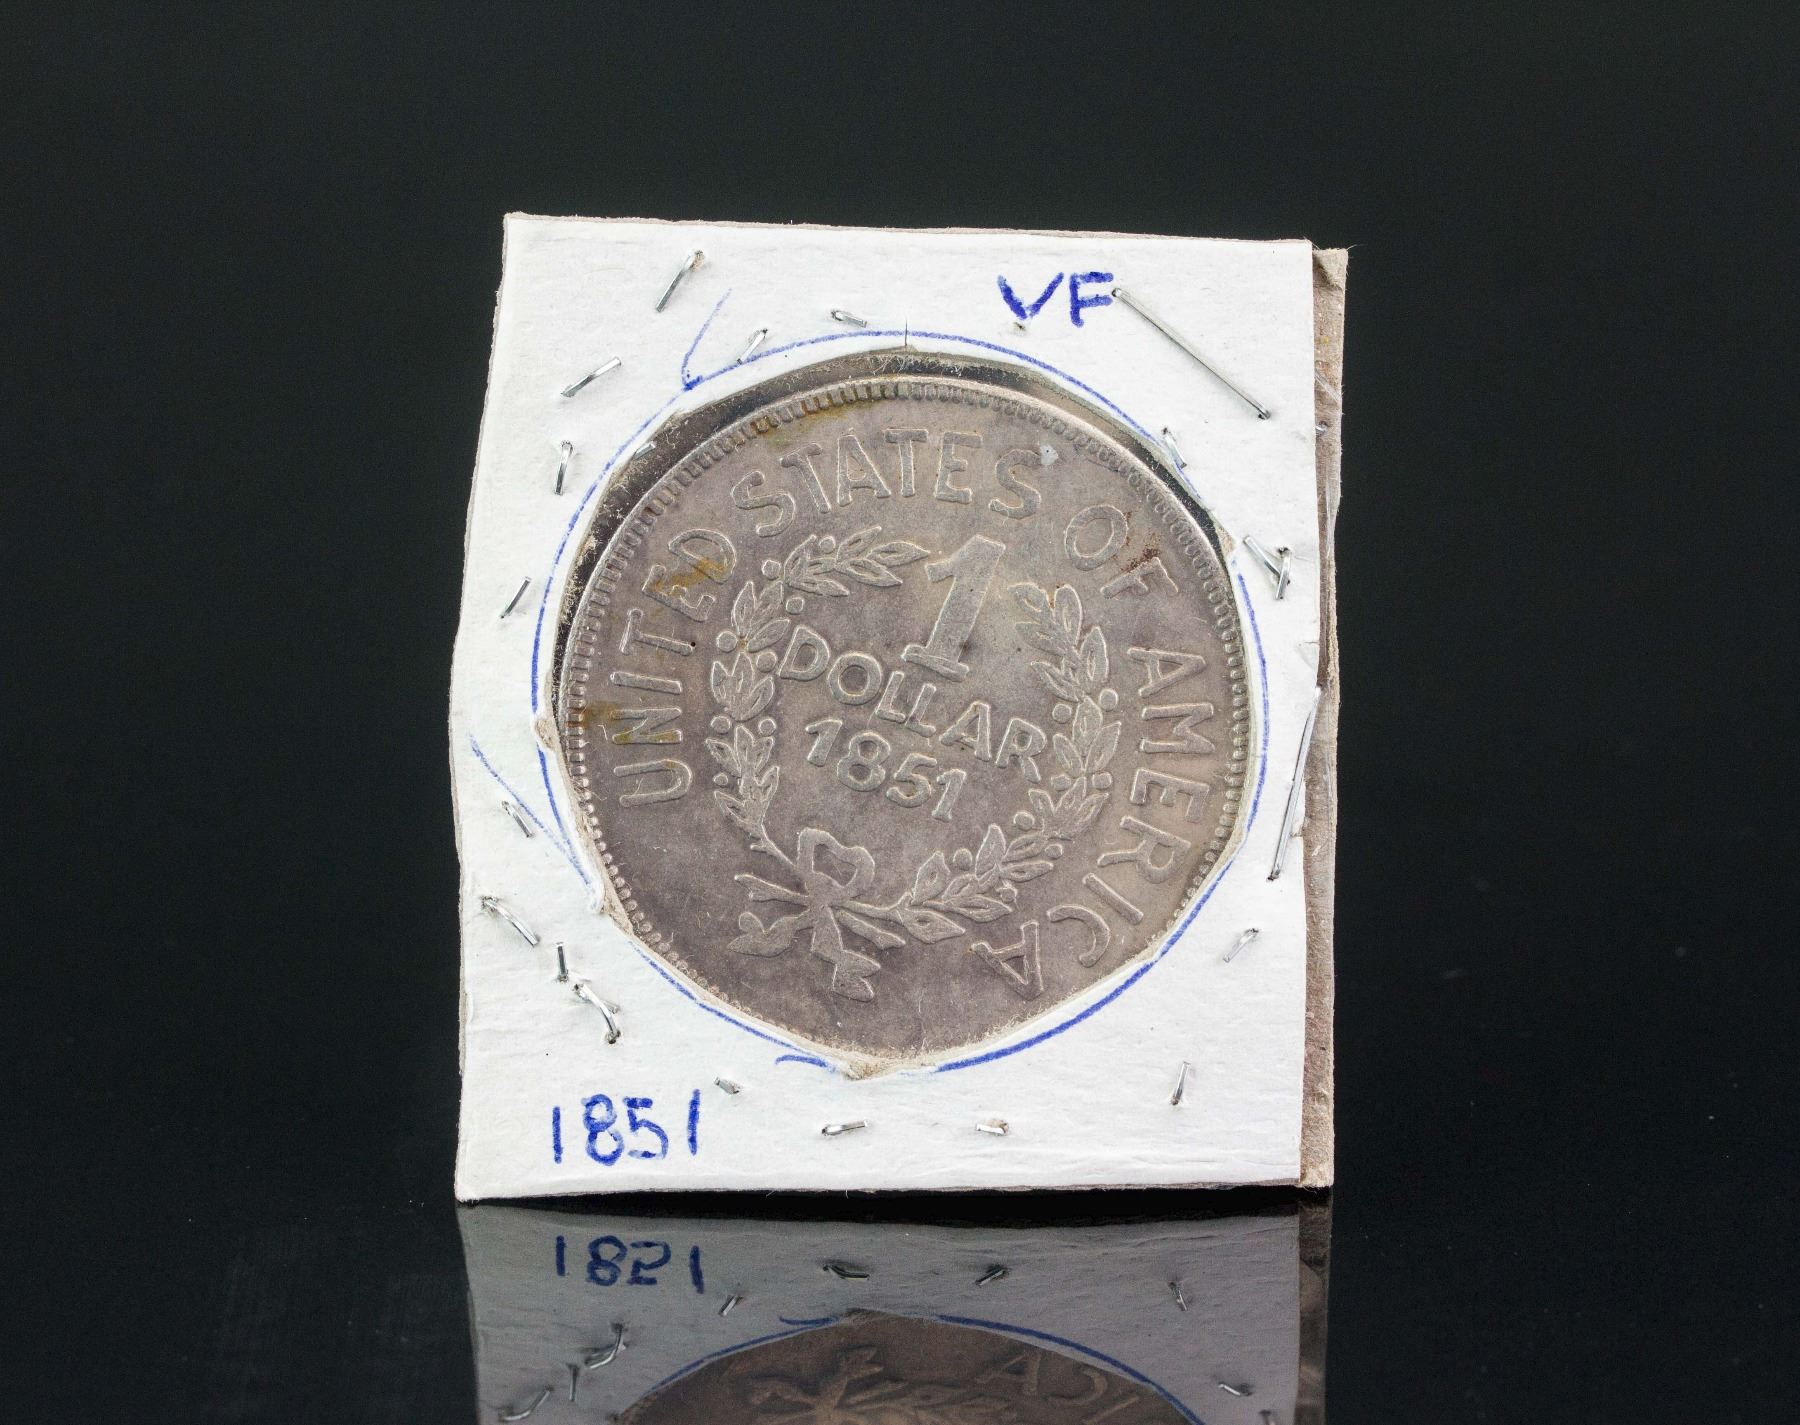 United States of America 1851 One Dollar Coin